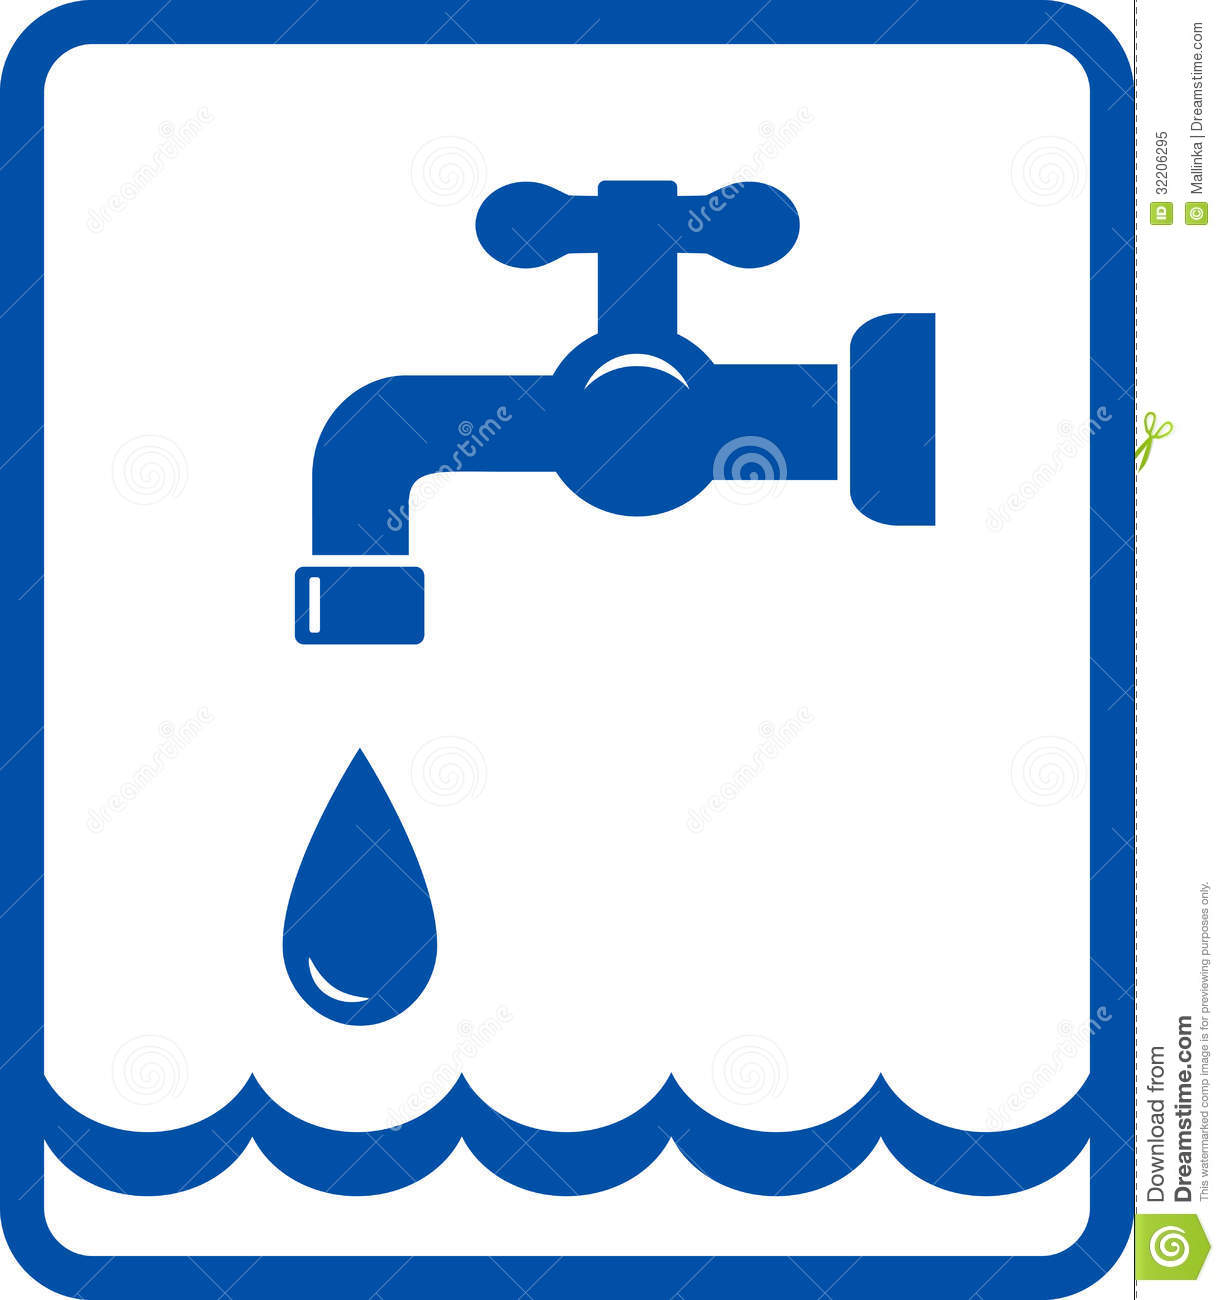 water tap clip art cliparts Tugboat Drawing tugboat clipart black and white